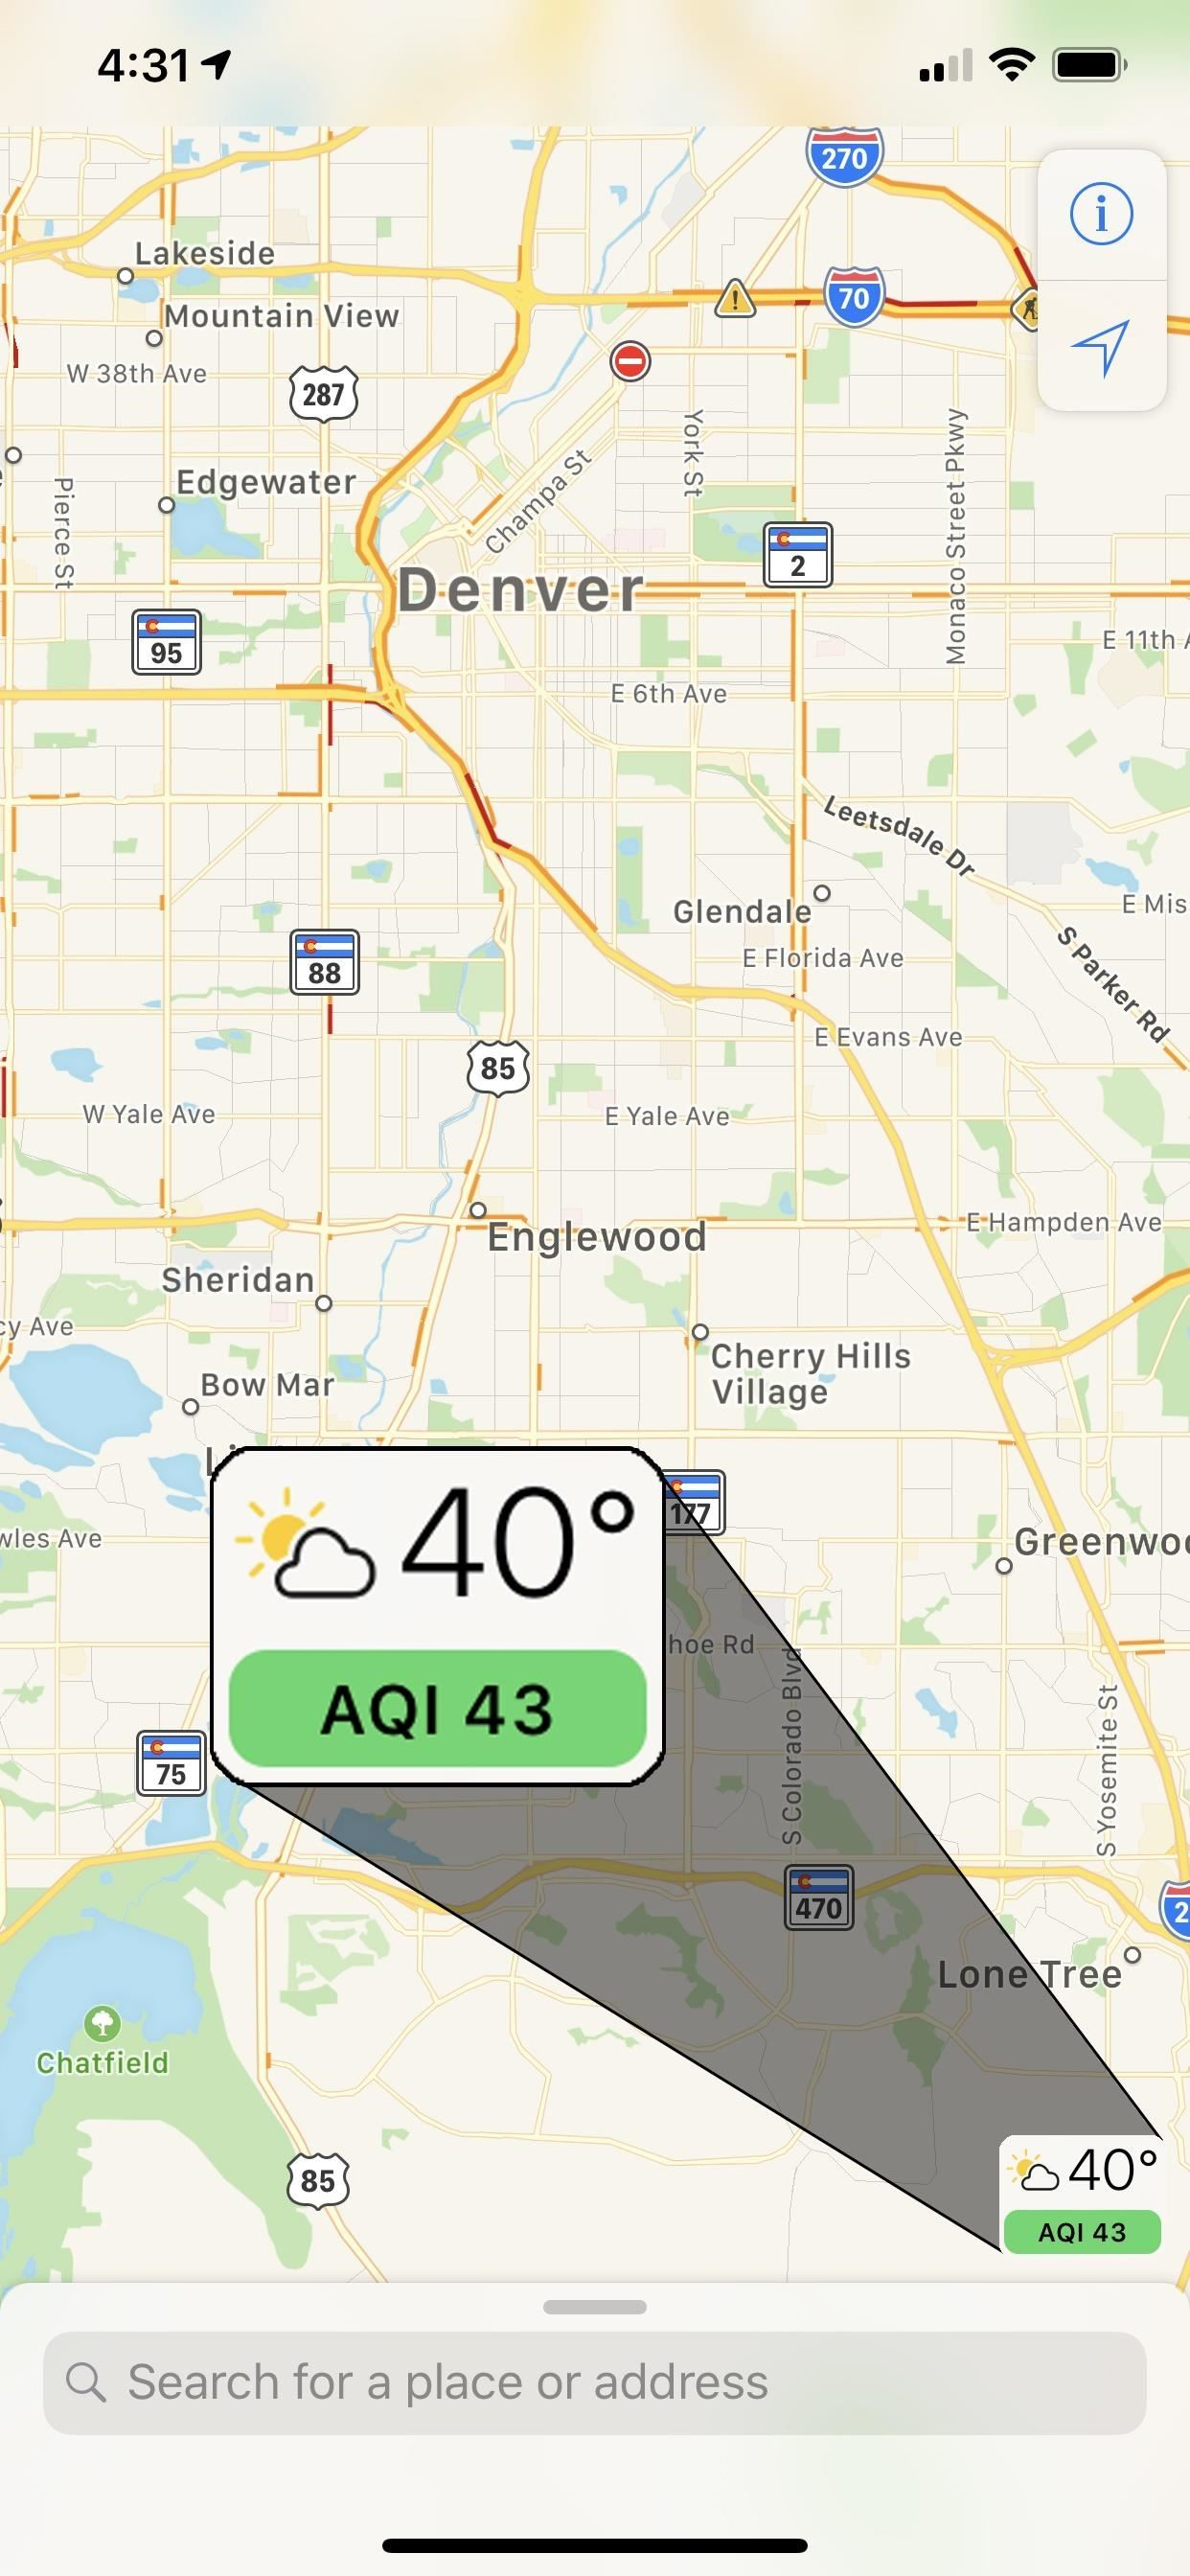 View Air Quality in Apple Maps to See How Polluted Cities & Destinations Are